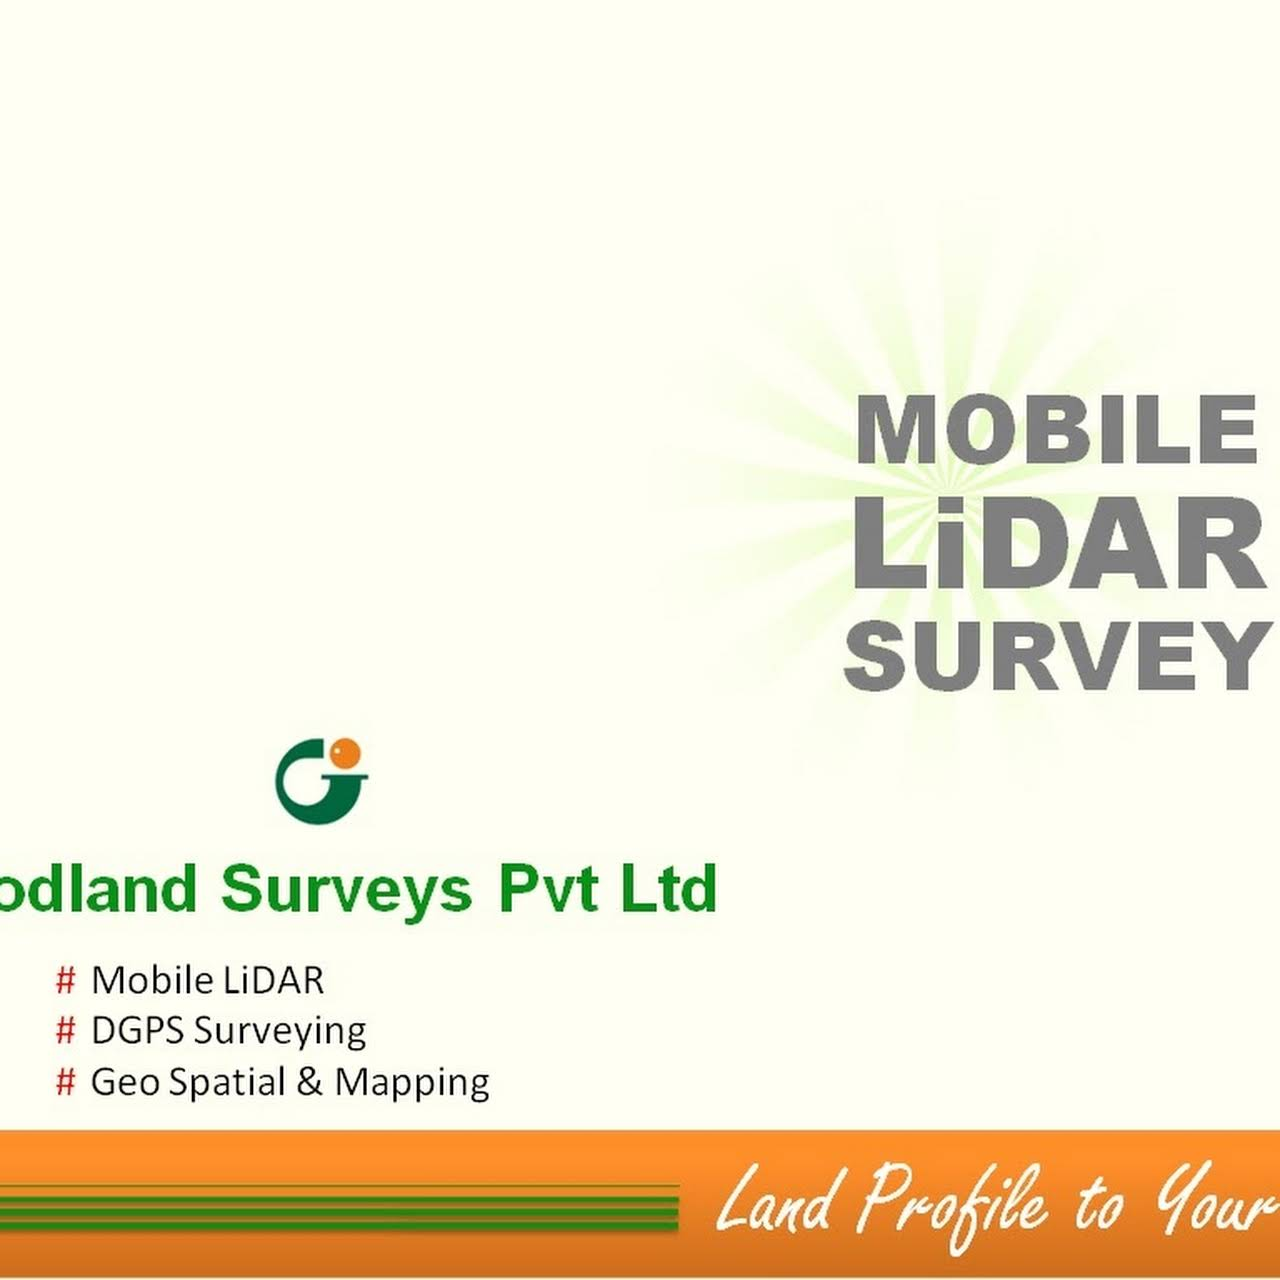 Goodland Surveys Pvt Ltd - Mobile LiDAR, Drone, DGPS, Total